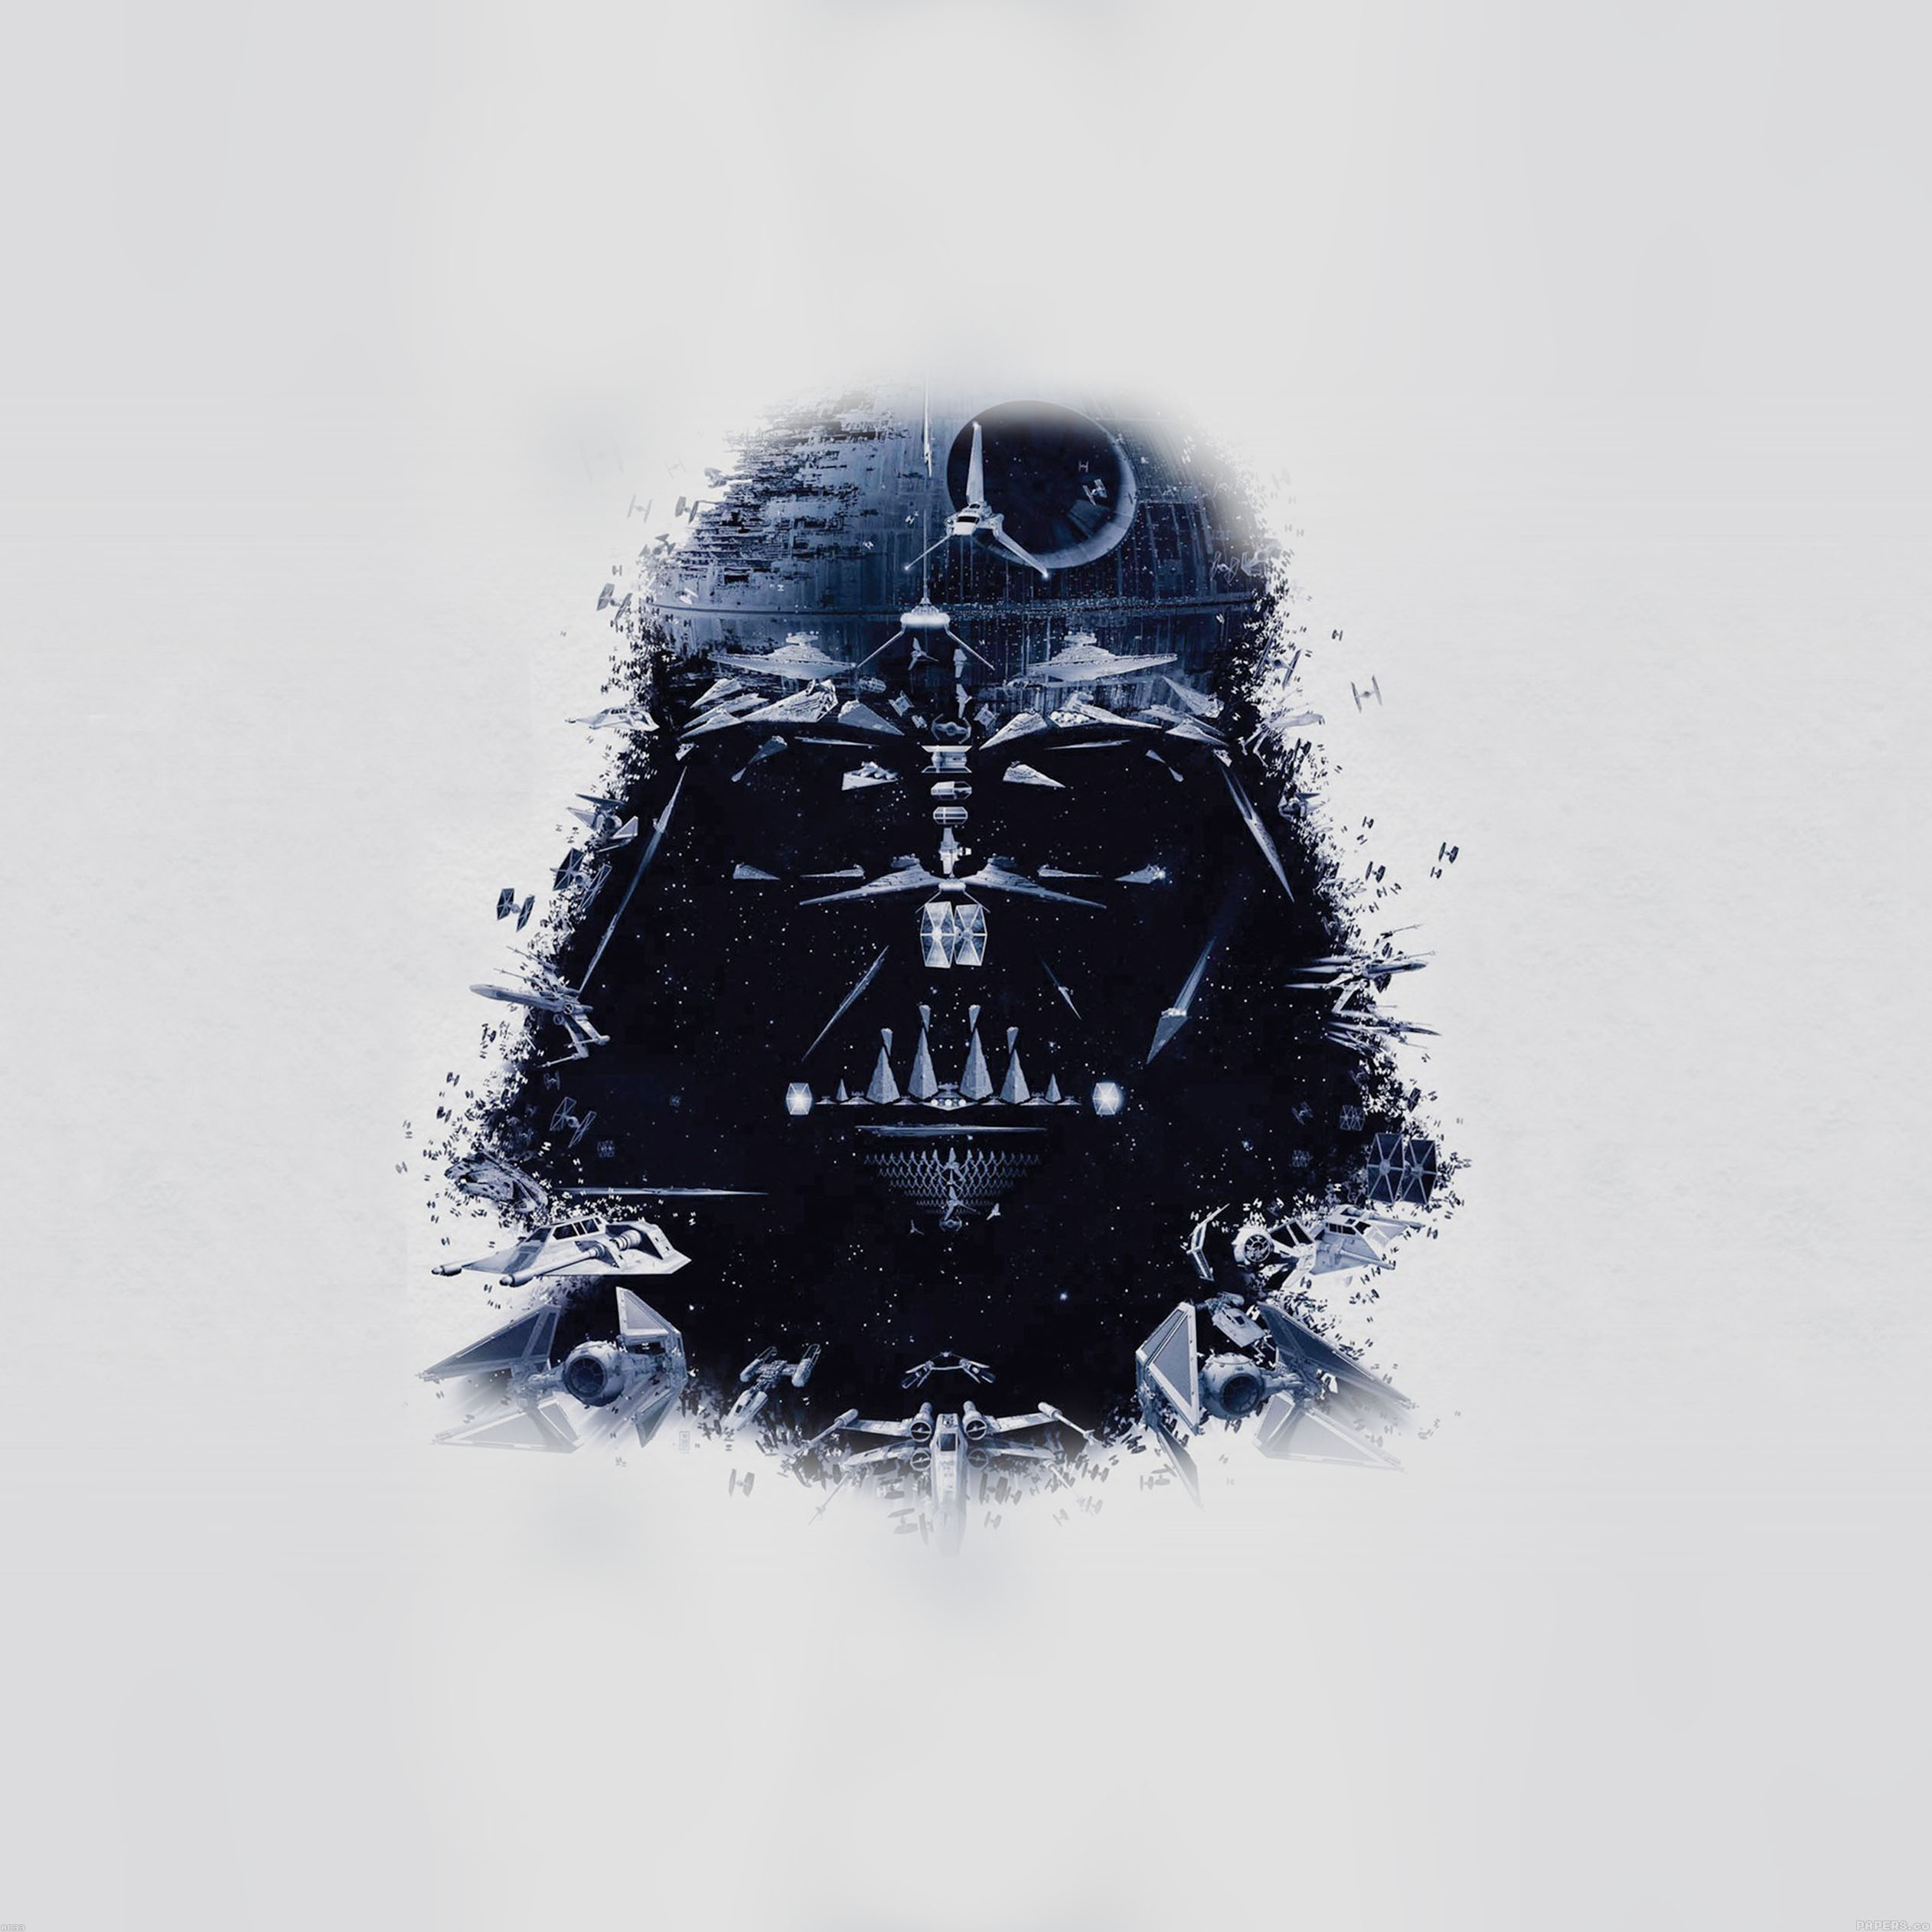 wallpaper-darth-vader-art-star-wars-illust-9-wallpaper